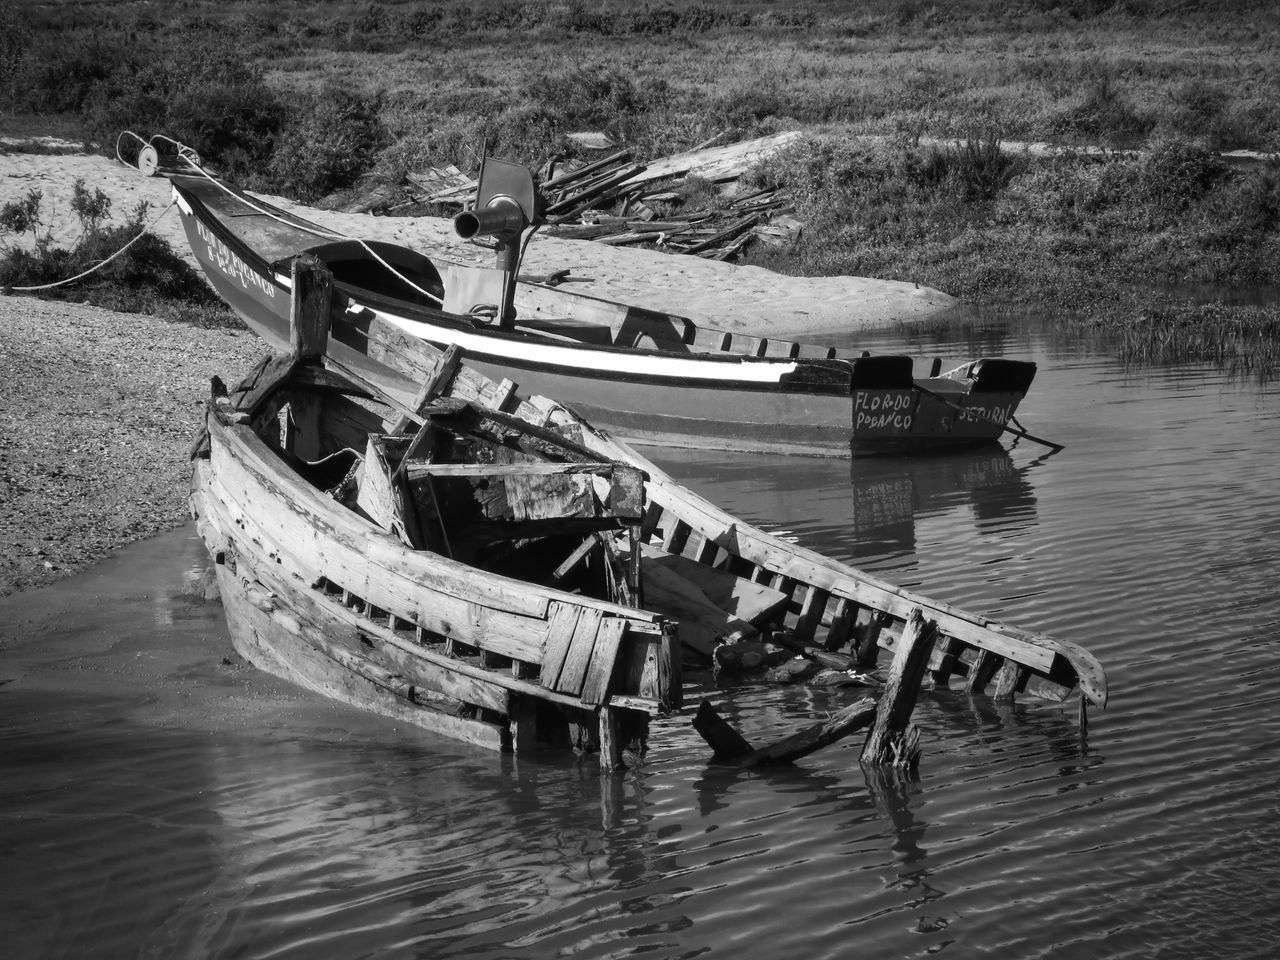 Abandoned Boat Boats Check This Out Day EyeEm Best Shots Mode Of Transport Moored Moorland Moors Nature Nautical Vessel No People Outdoors Rippled Water Riverside Run-down Shipwreck Shipwrecked Shore Solitude Transportation Water Weathered Wooden Boat